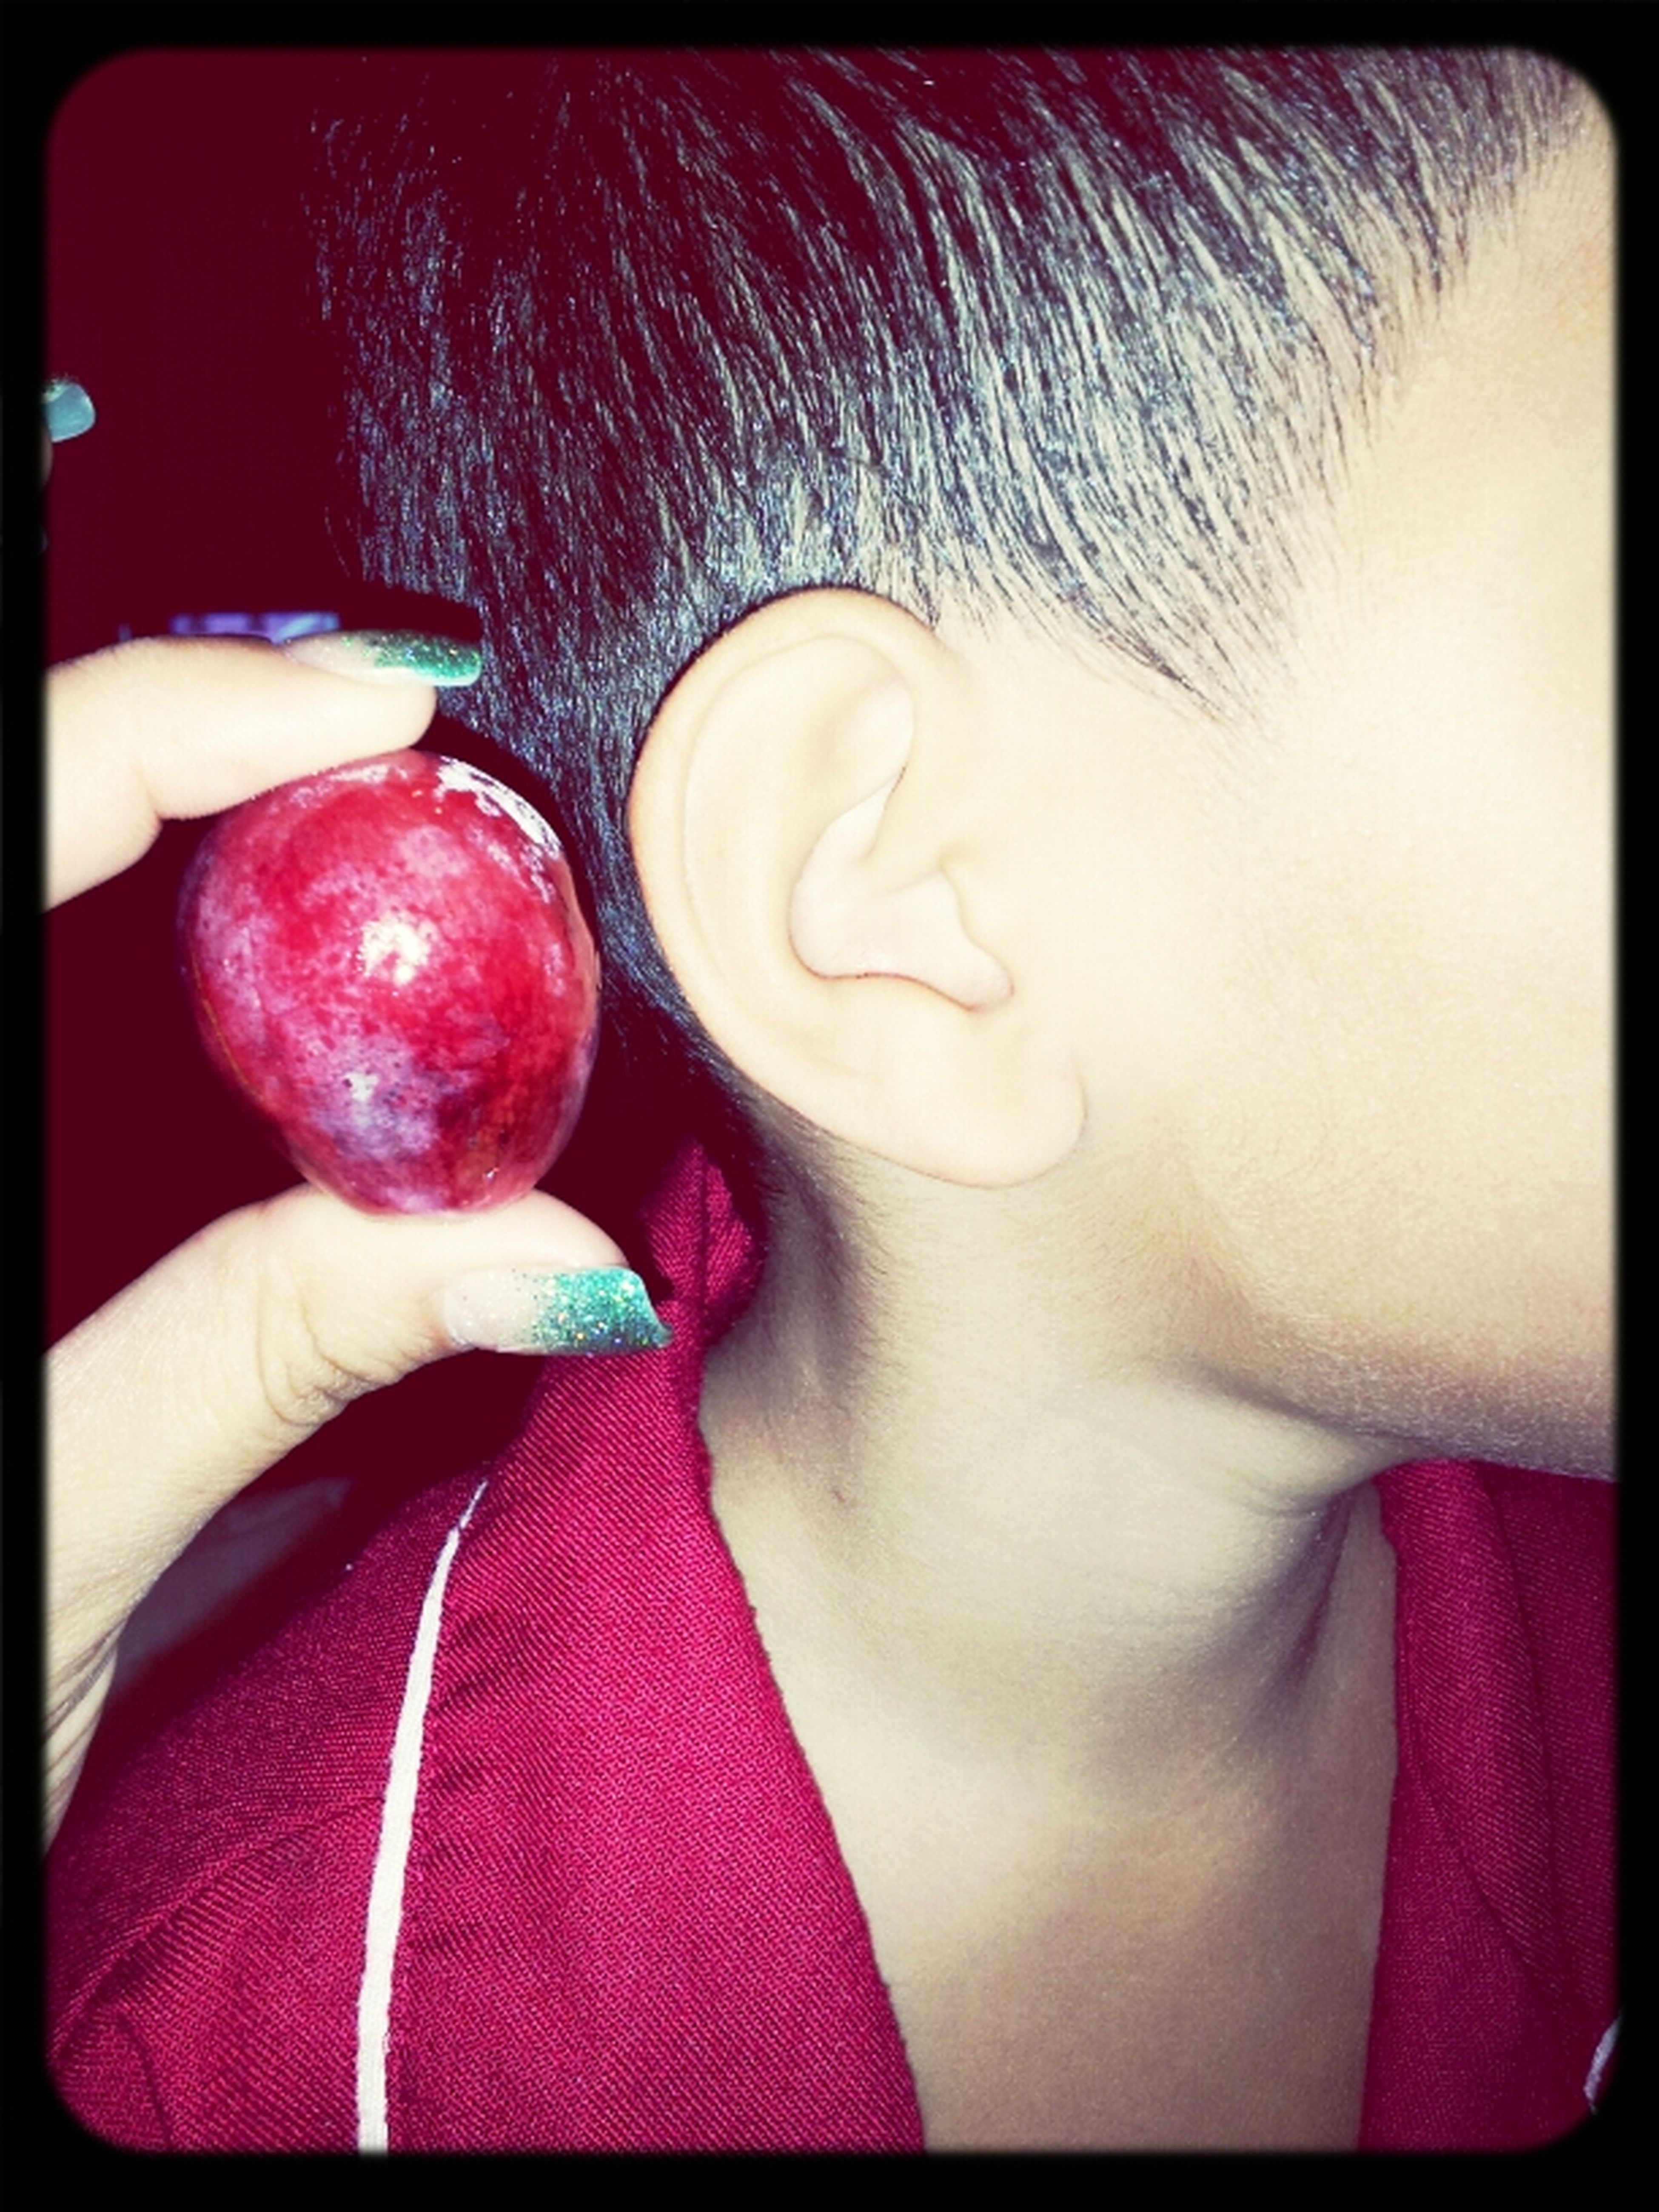 Biggest Grape I Have Ever Seen!! Almost As Big As My Boys Ear!